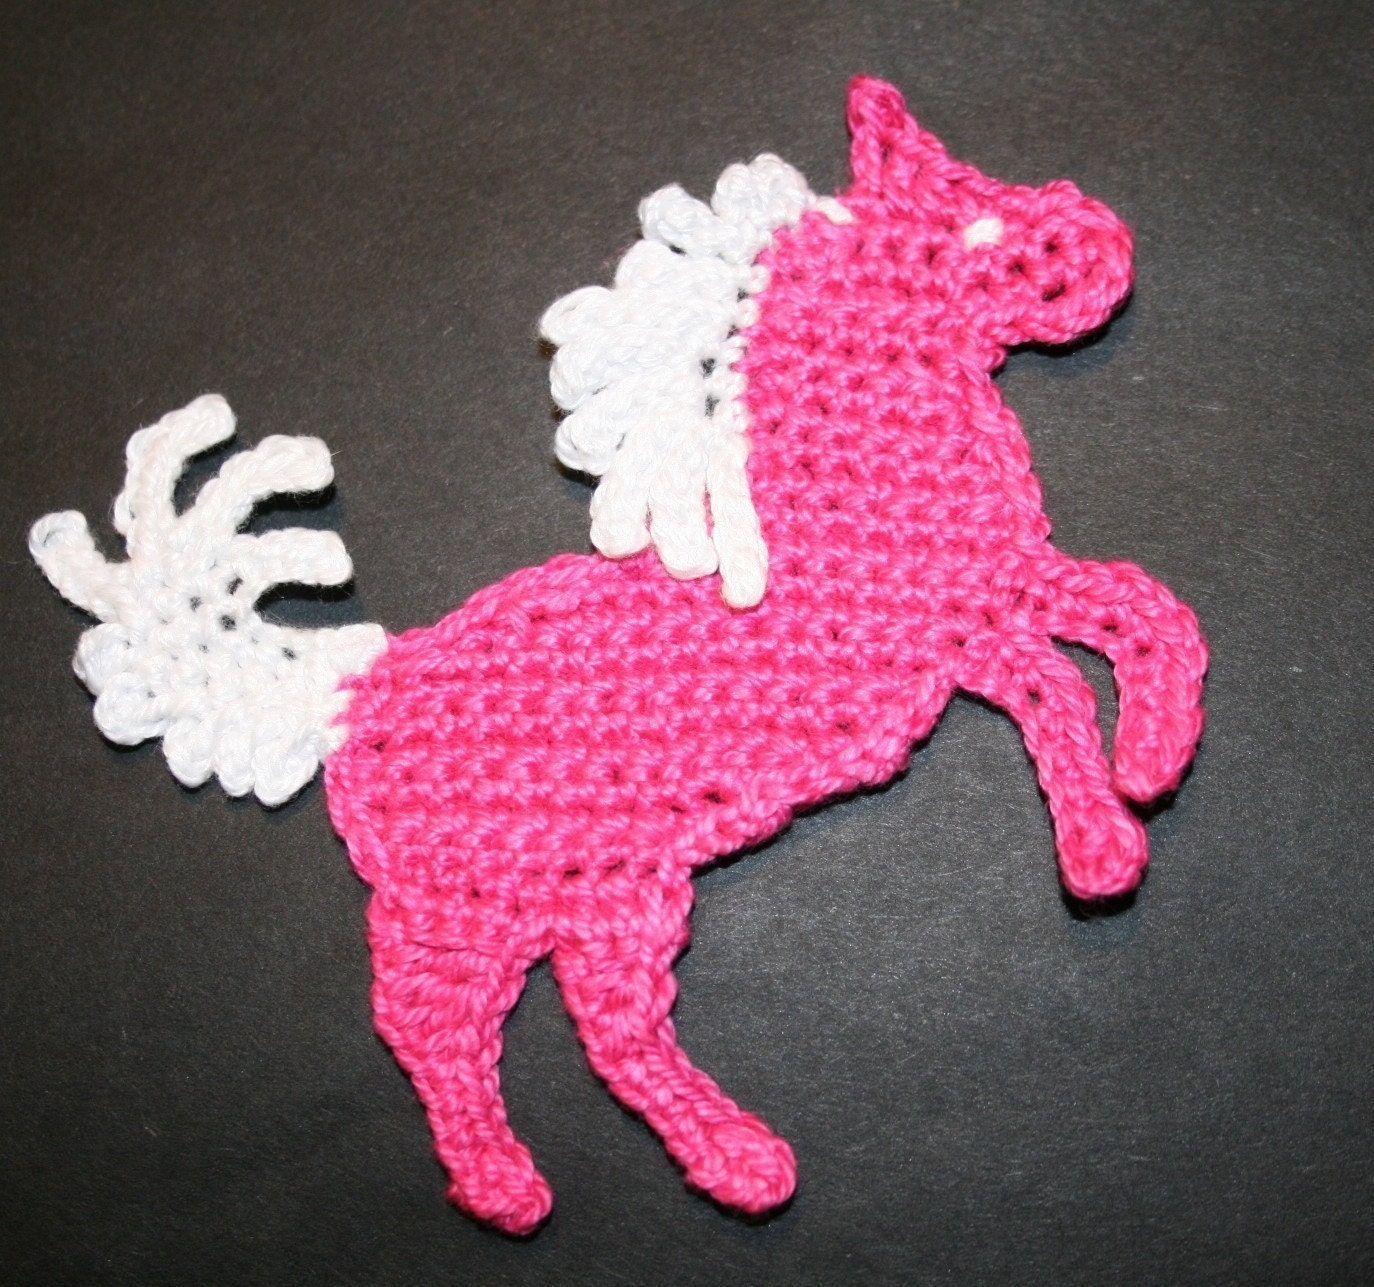 Pattern-Crochet Horse Pony Or Unicorn